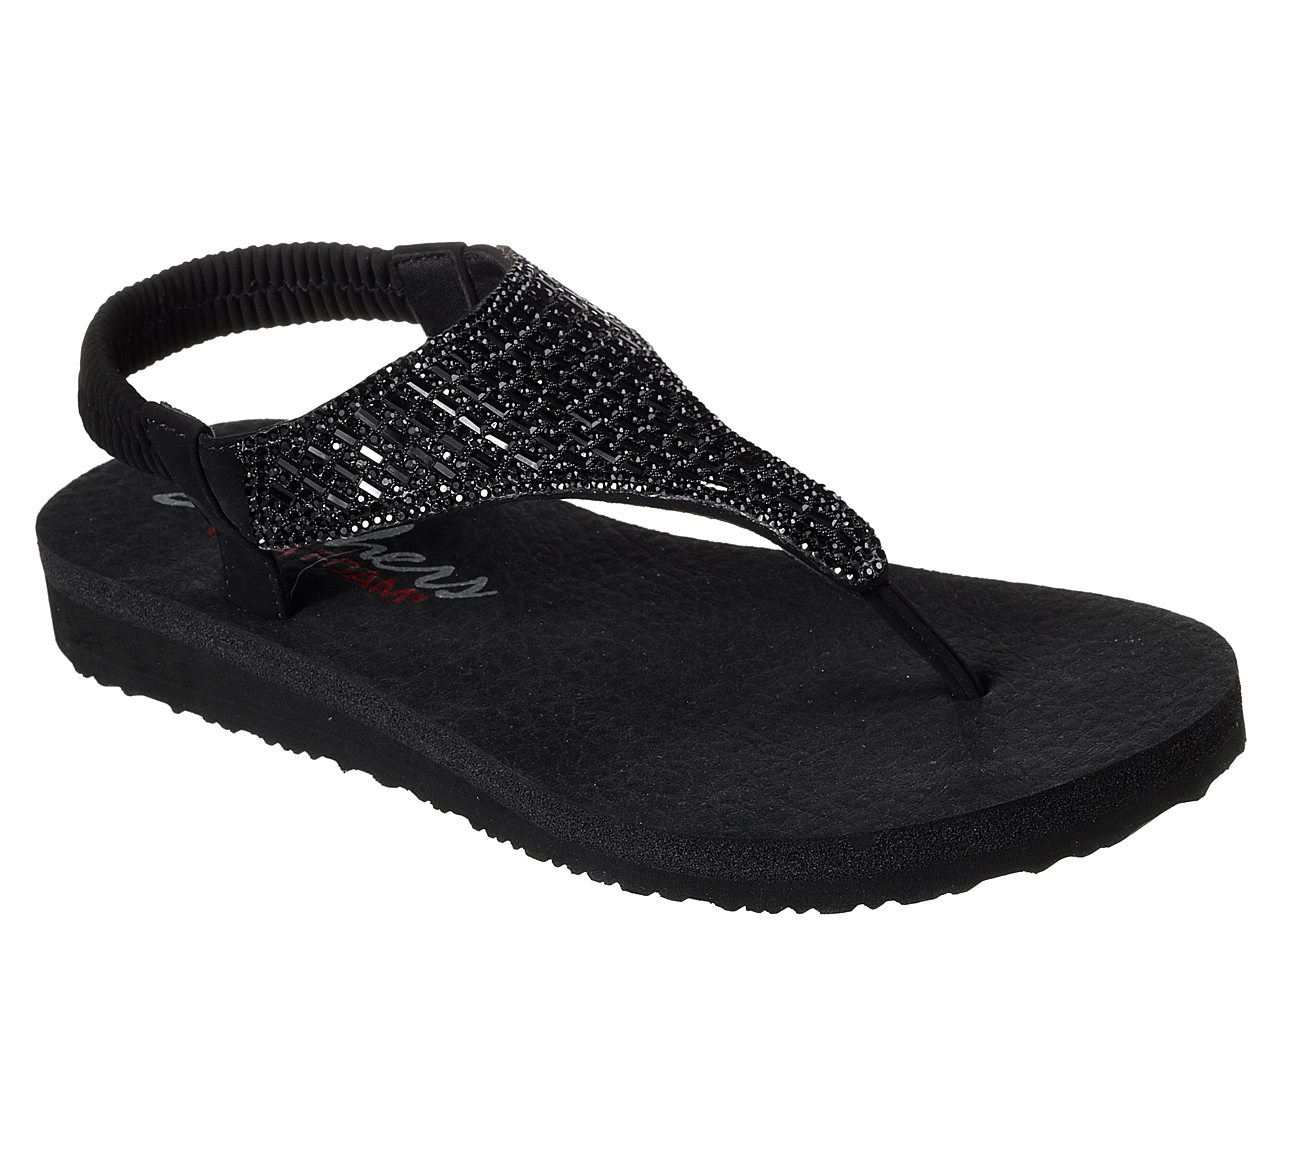 2d95f2cc738 Buy SKECHERS Meditation - Rock Crown SKECHERS Cali Shoes only £35.00